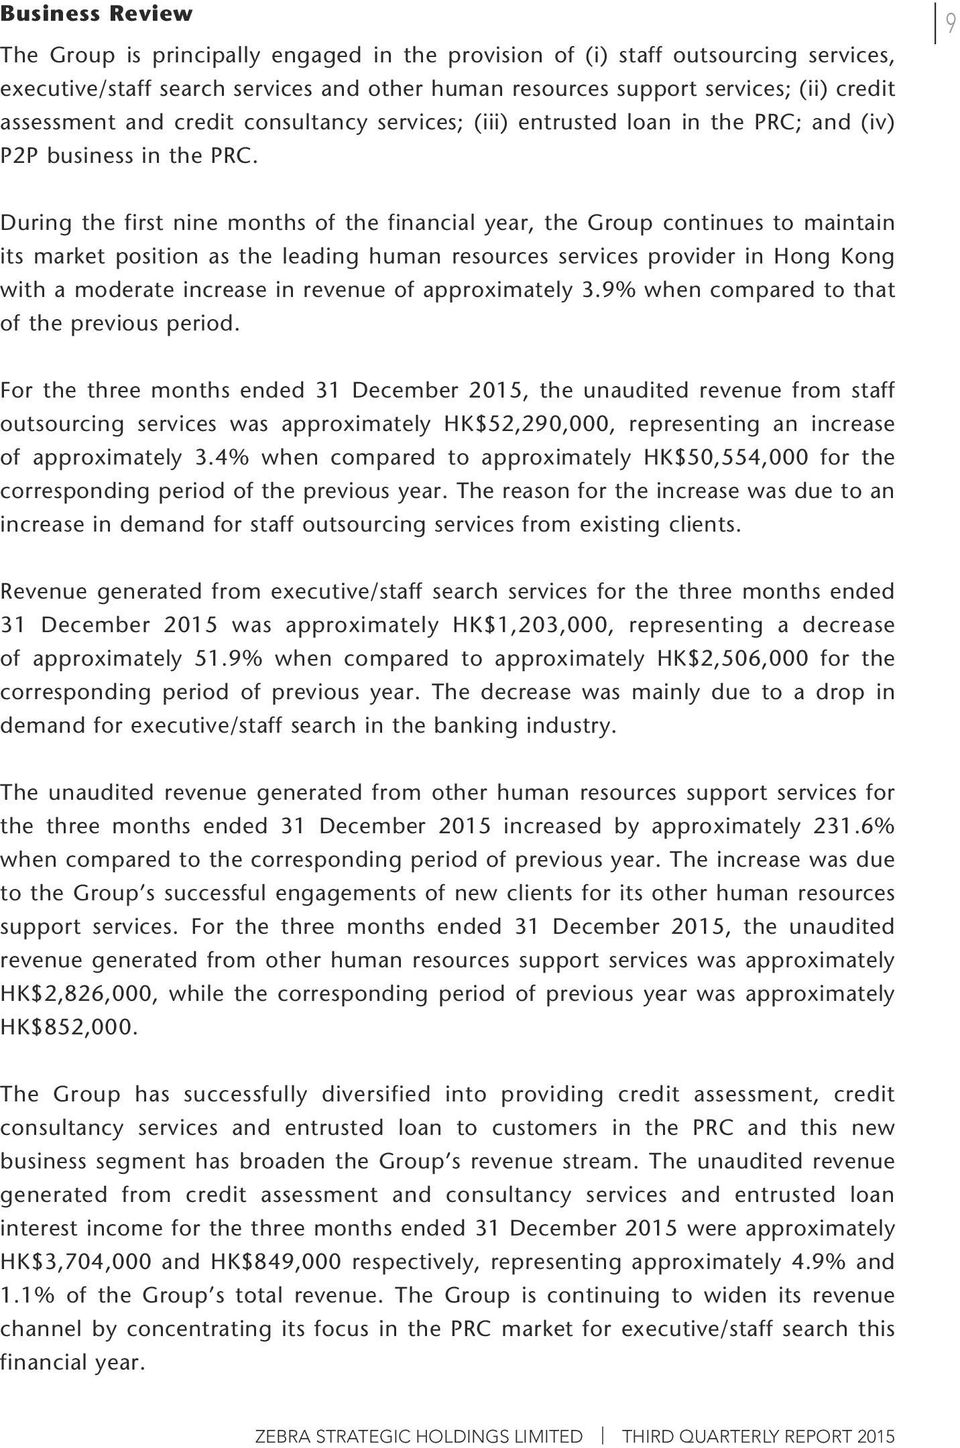 9 During the first nine months of the financial year, the Group continues to maintain its market position as the leading human resources services provider in Hong Kong with a moderate increase in